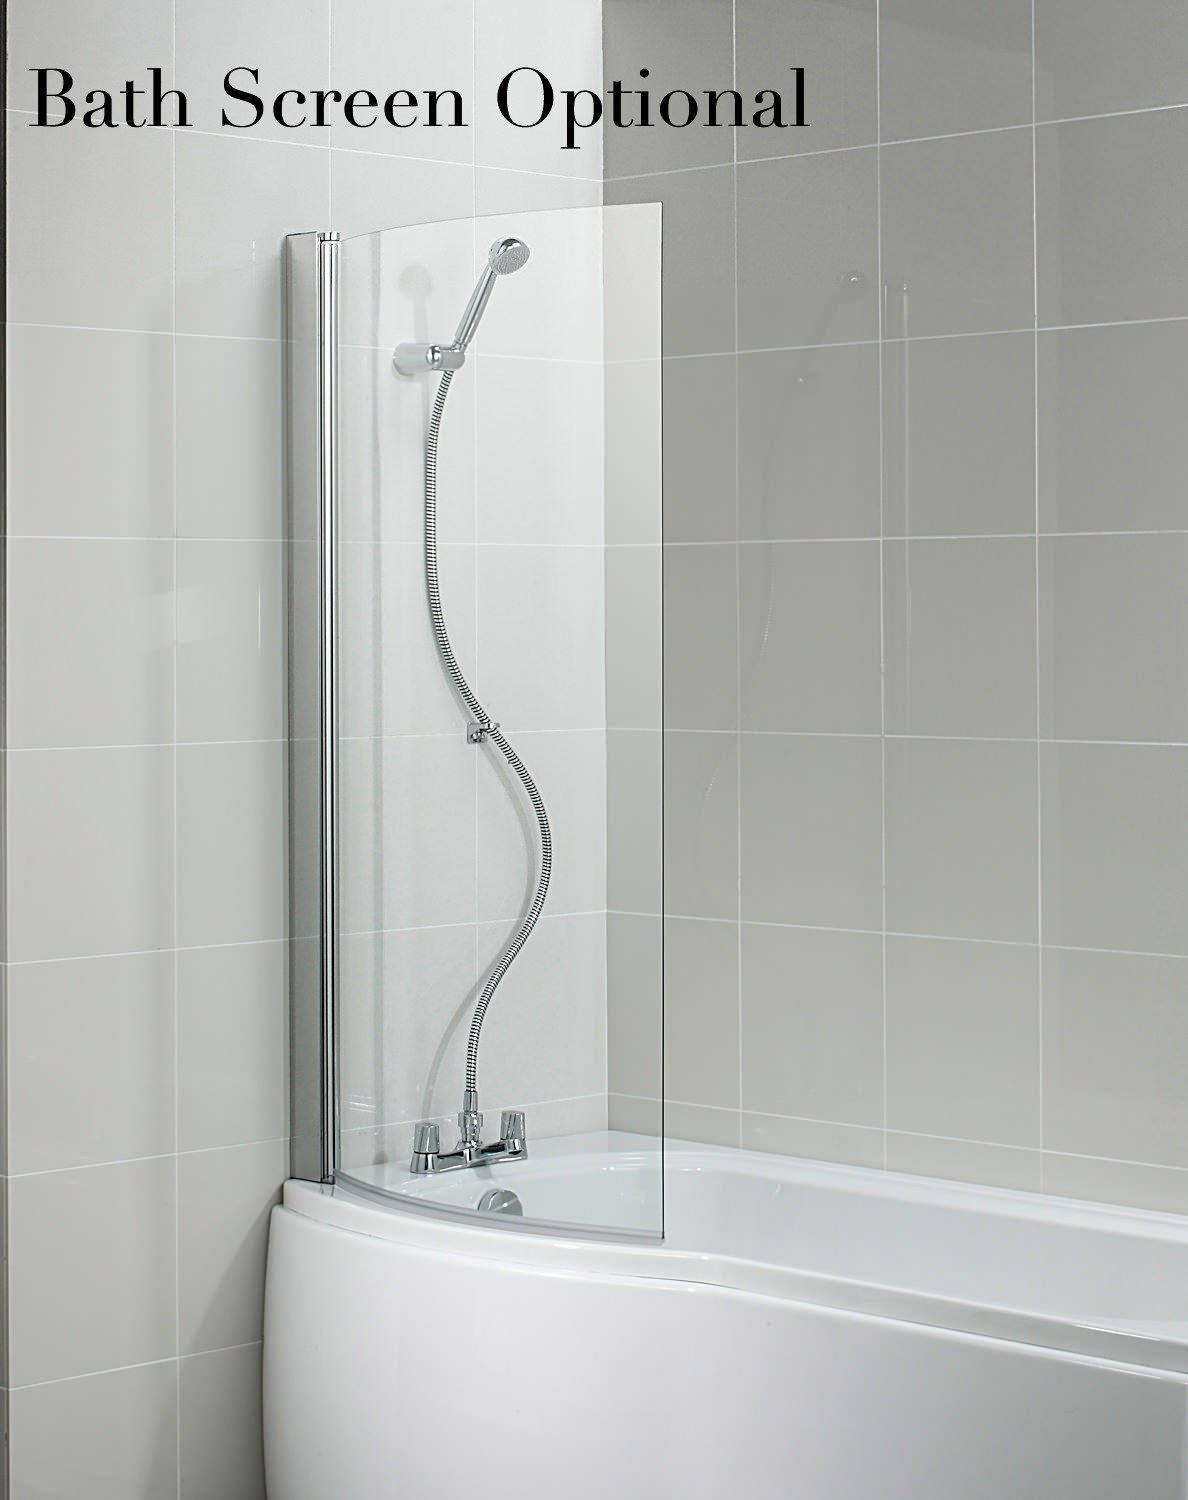 100 trojan shower bath carron urban compact 5mm acrylic ideal standard alto 170cm no th idealform plus lh shower bath